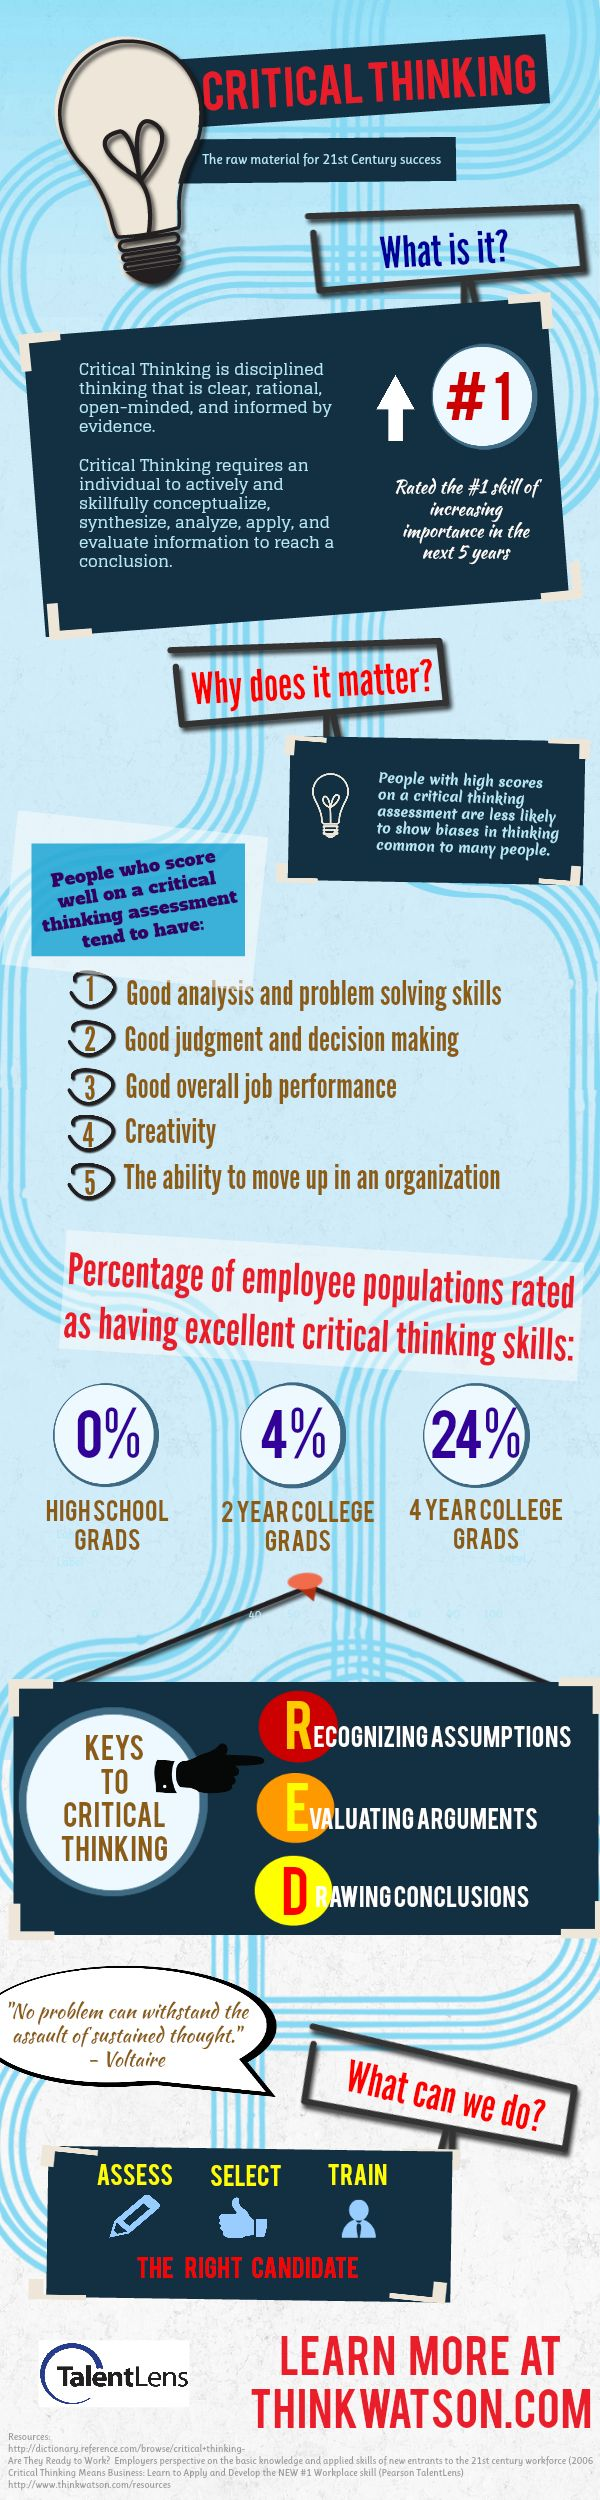 Critical Thinking: the raw material for 21st century success [infographic]